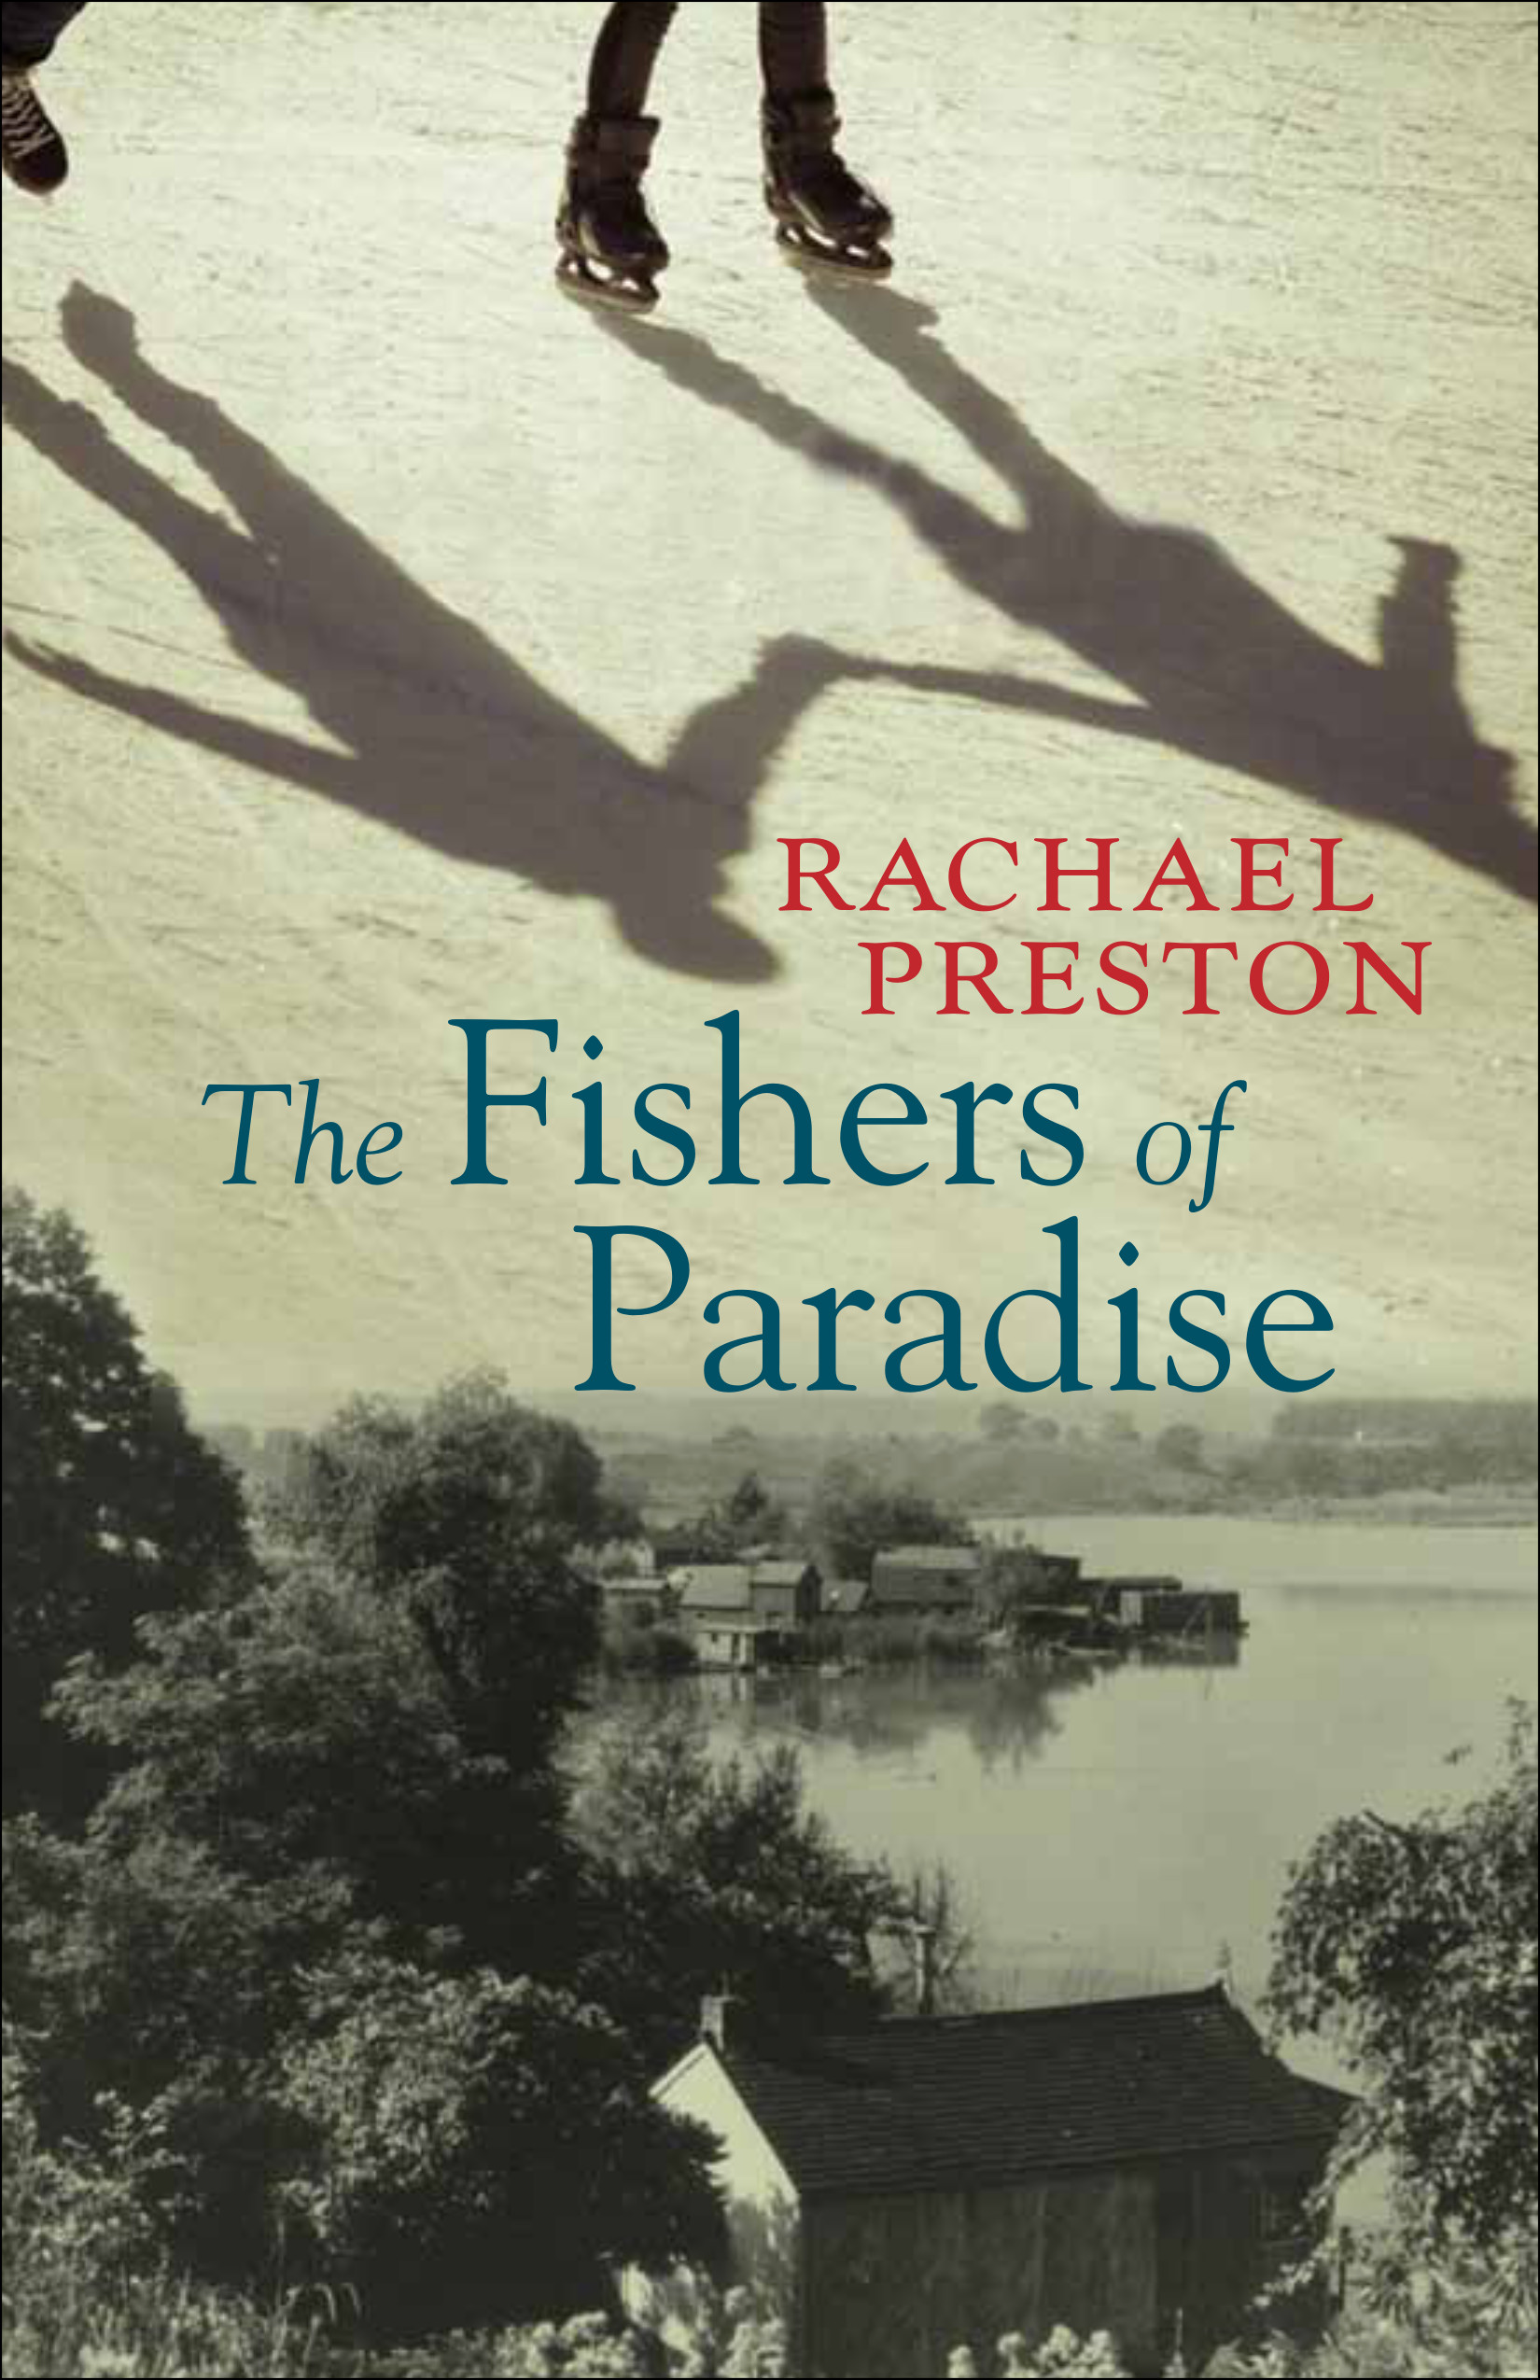 Fishers-of-Paradise.jpg